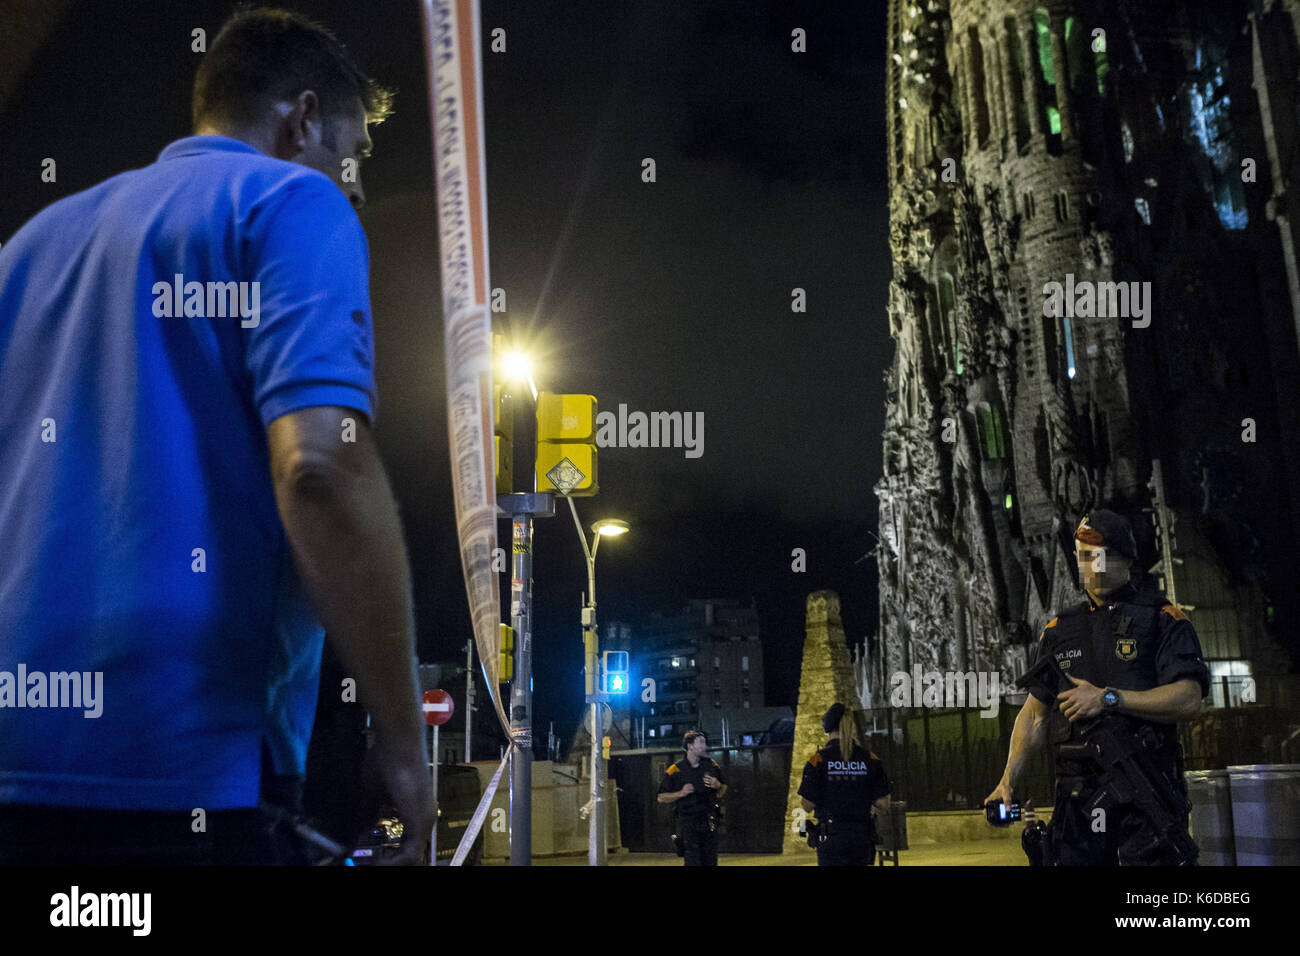 Members of the Mossos d'Esquadra, the Catalan Police, watch the perimeter of the Sagrada Familia after a terrorist alert in Barcelona, Catalonia, Spain, 12 September 2017. A fake alarm on the presence of a suspicions van parked near the Sagrada Familia cathedral has forced the cordoning of the perimeter. EFE/Quique Garcia - Stock Image